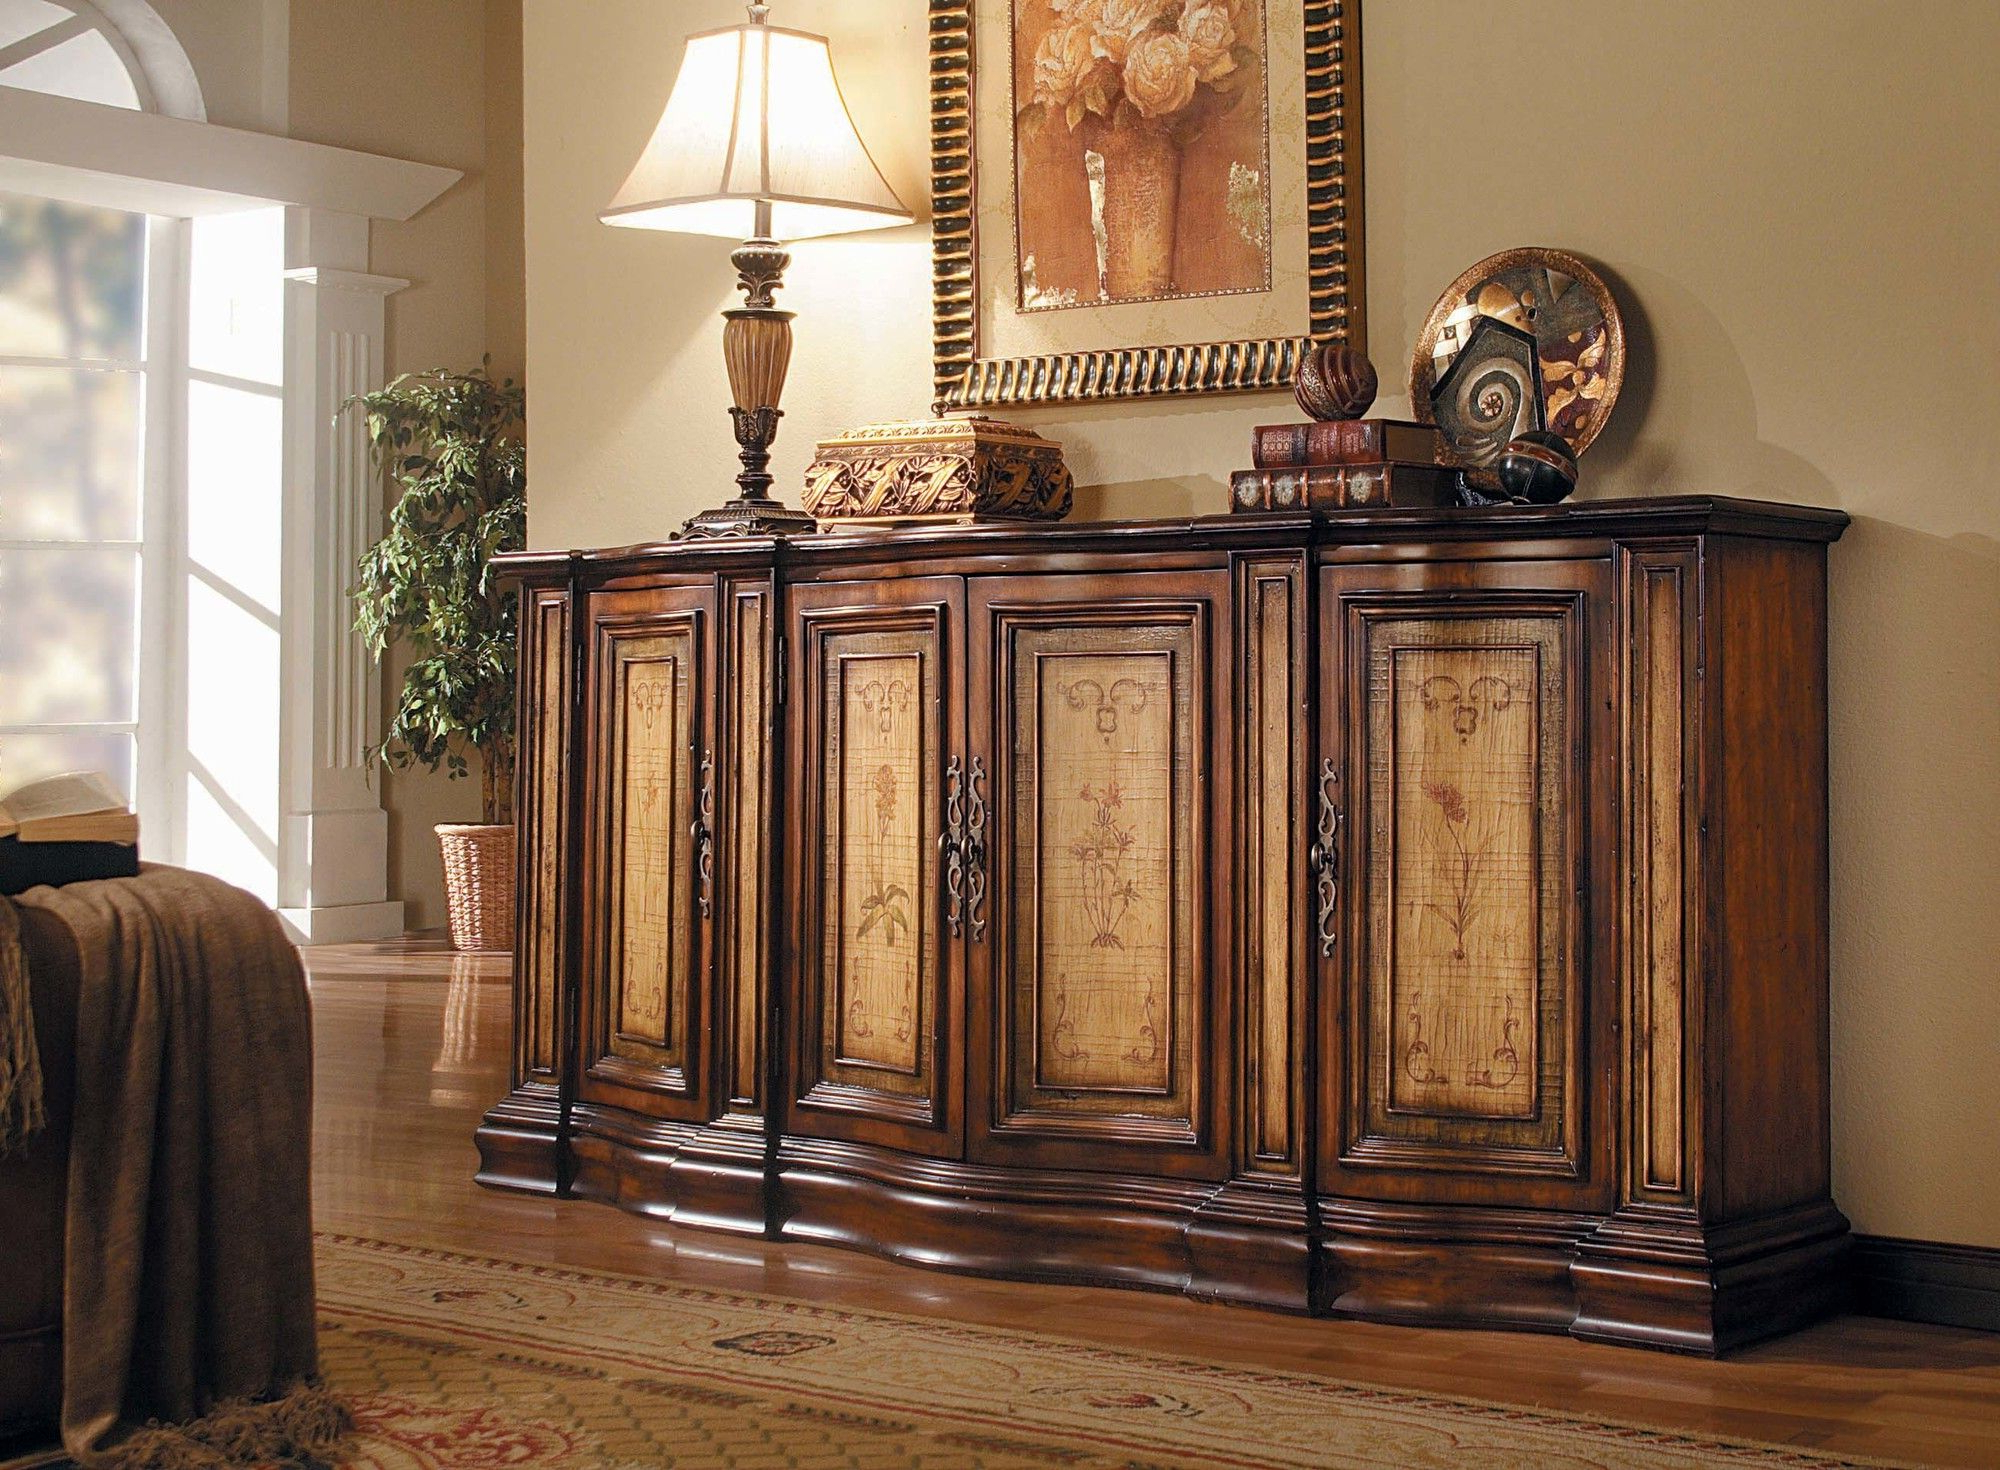 Hooker Furniture Seven Seas Credenza | Furniture | Hooker With Seven Seas Asian Sideboards (View 14 of 20)